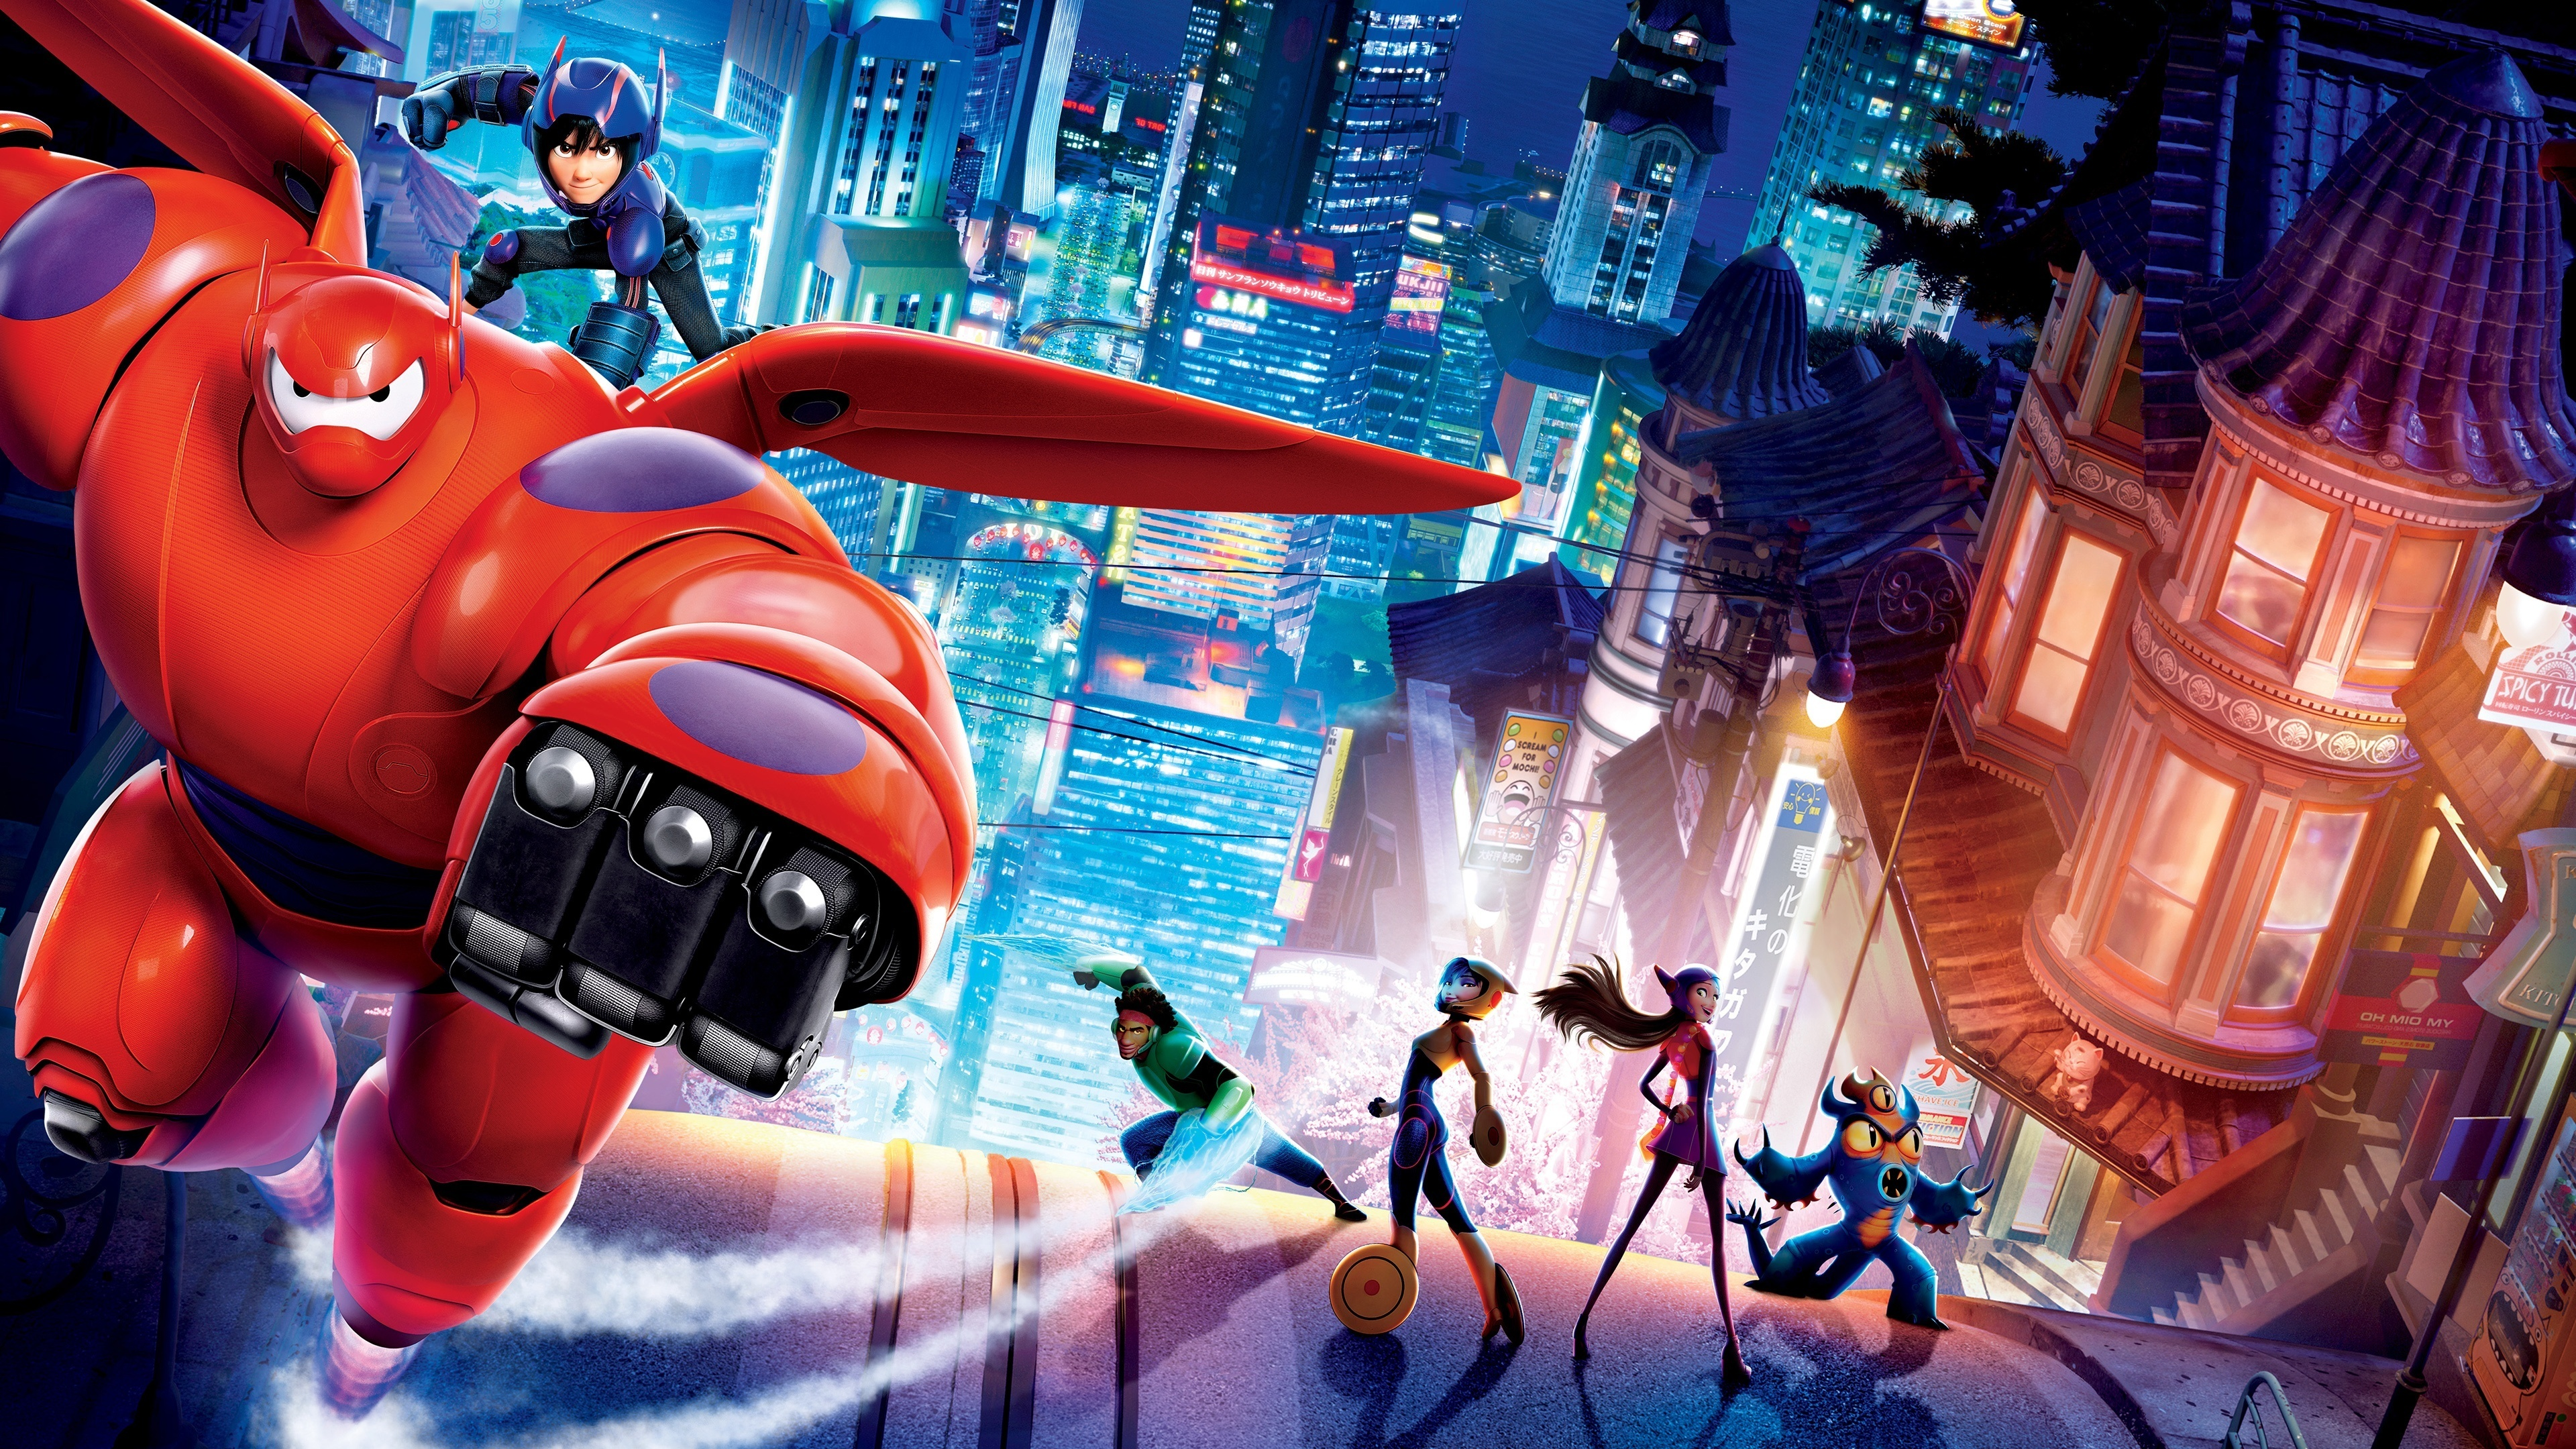 85 Big Hero 6 HD Wallpapers Background Images 3840x2160